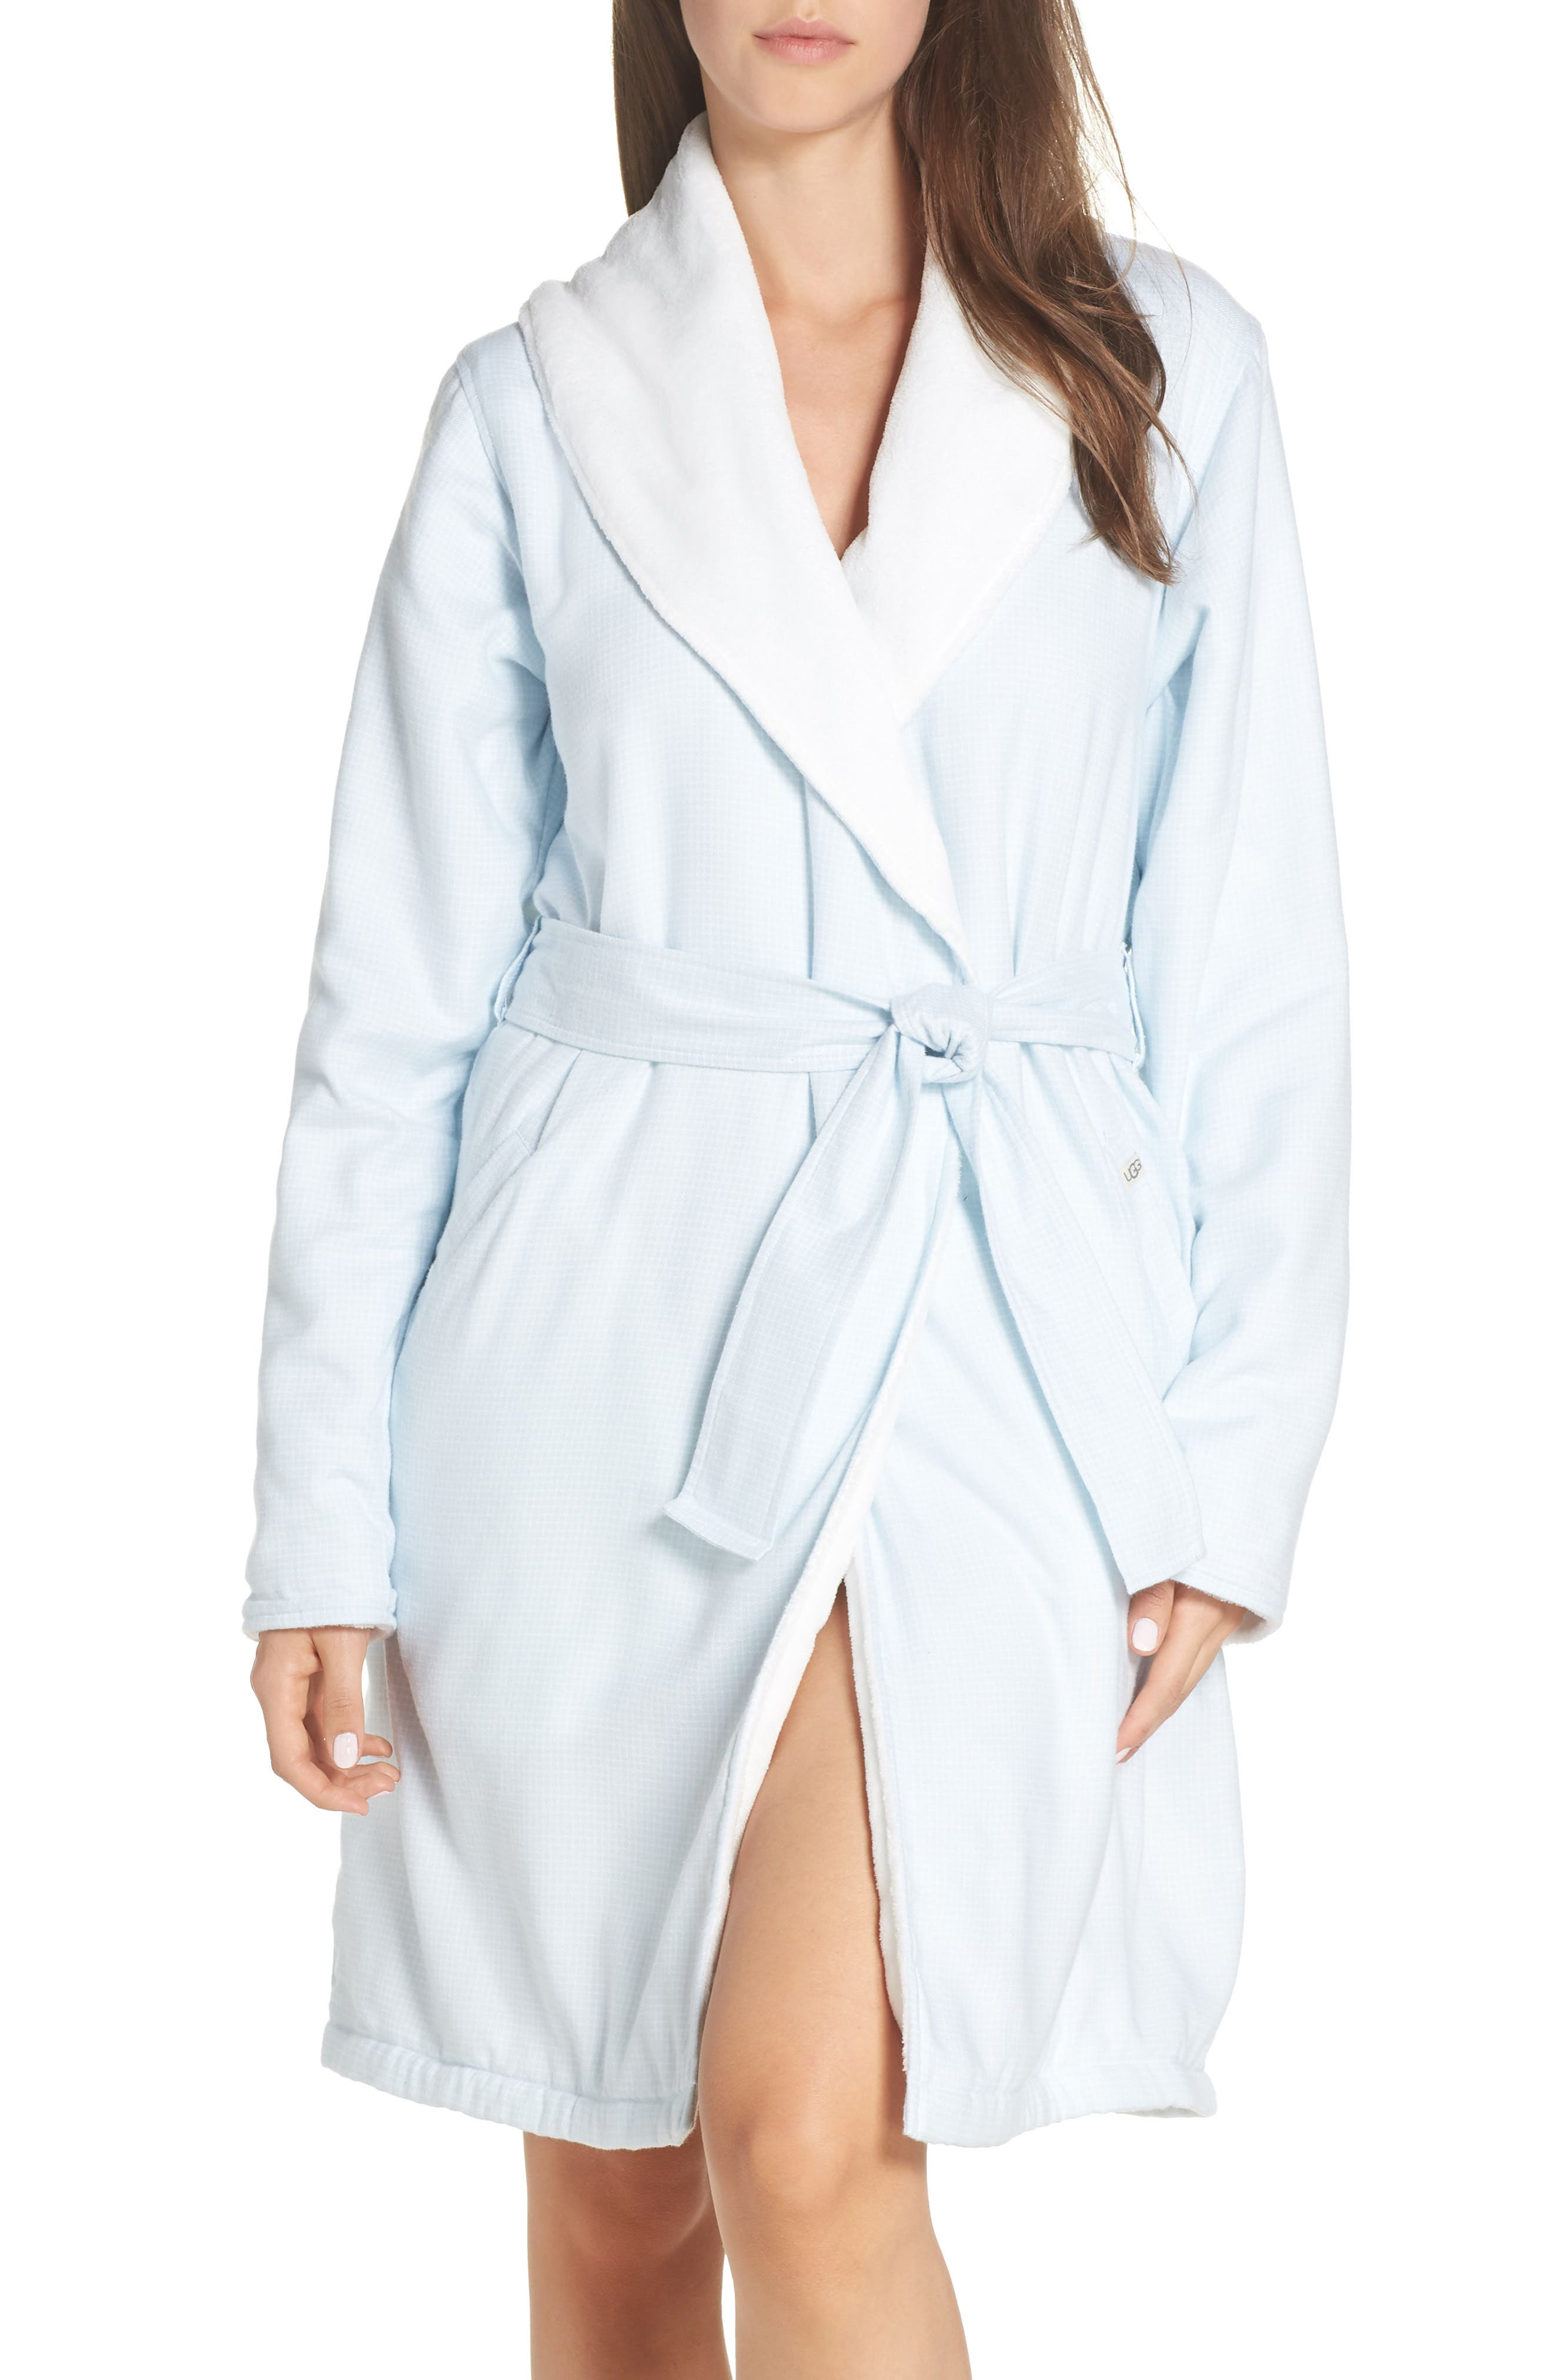 Anika Fleece Lined Flannel Robe,                         Main,                         color, SKY BLUE / WHITE CHECK